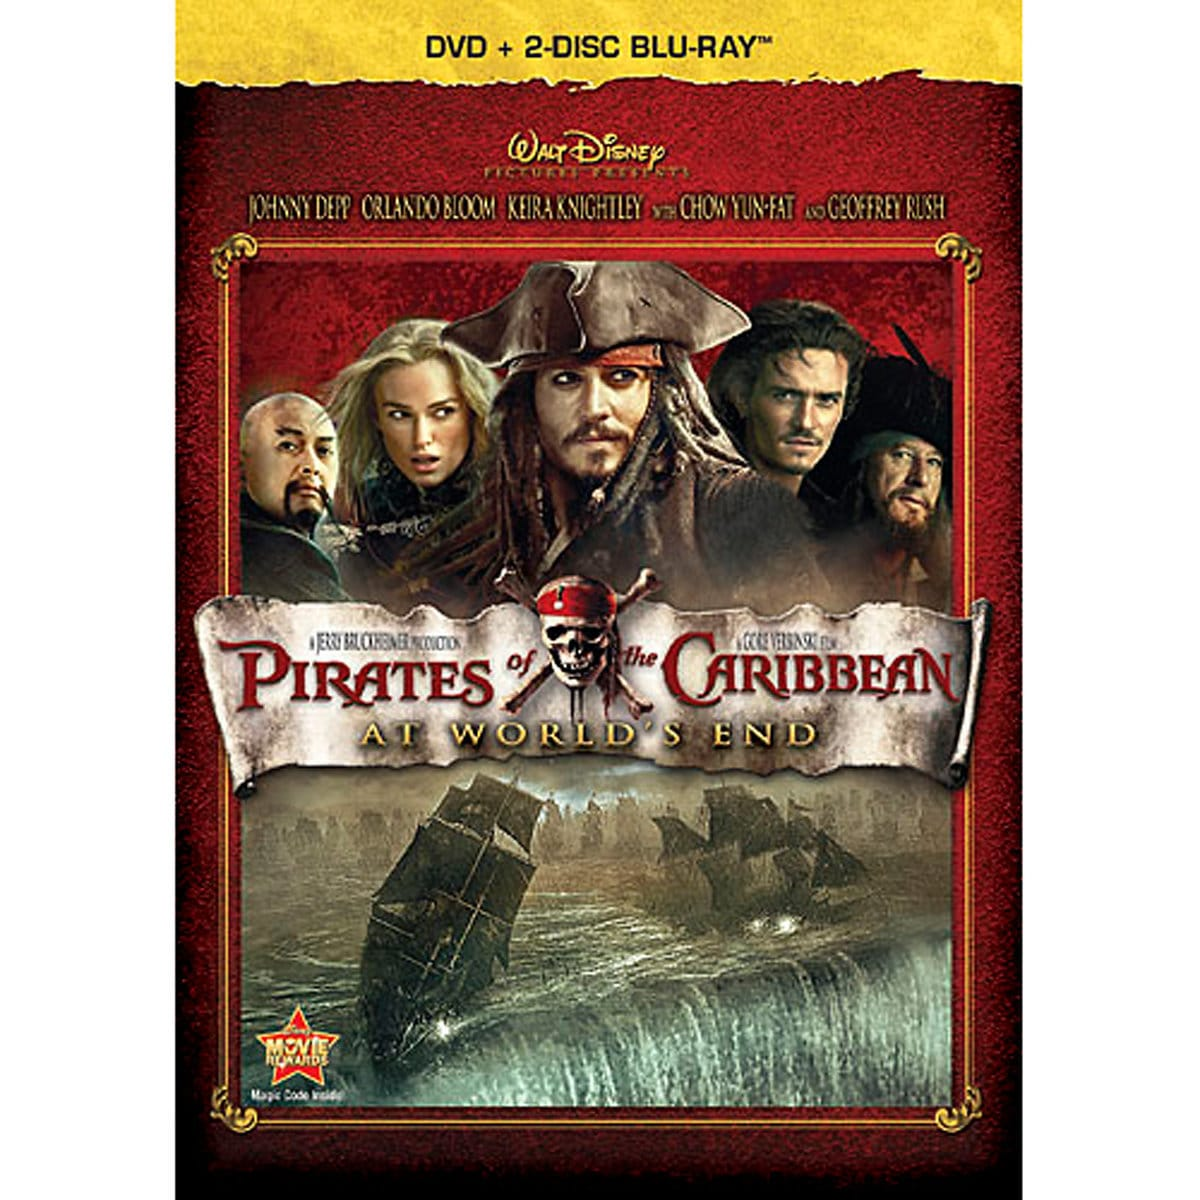 Pirates of the Caribbean: At World\'s End - Blu-ray + DVD | shopDisney